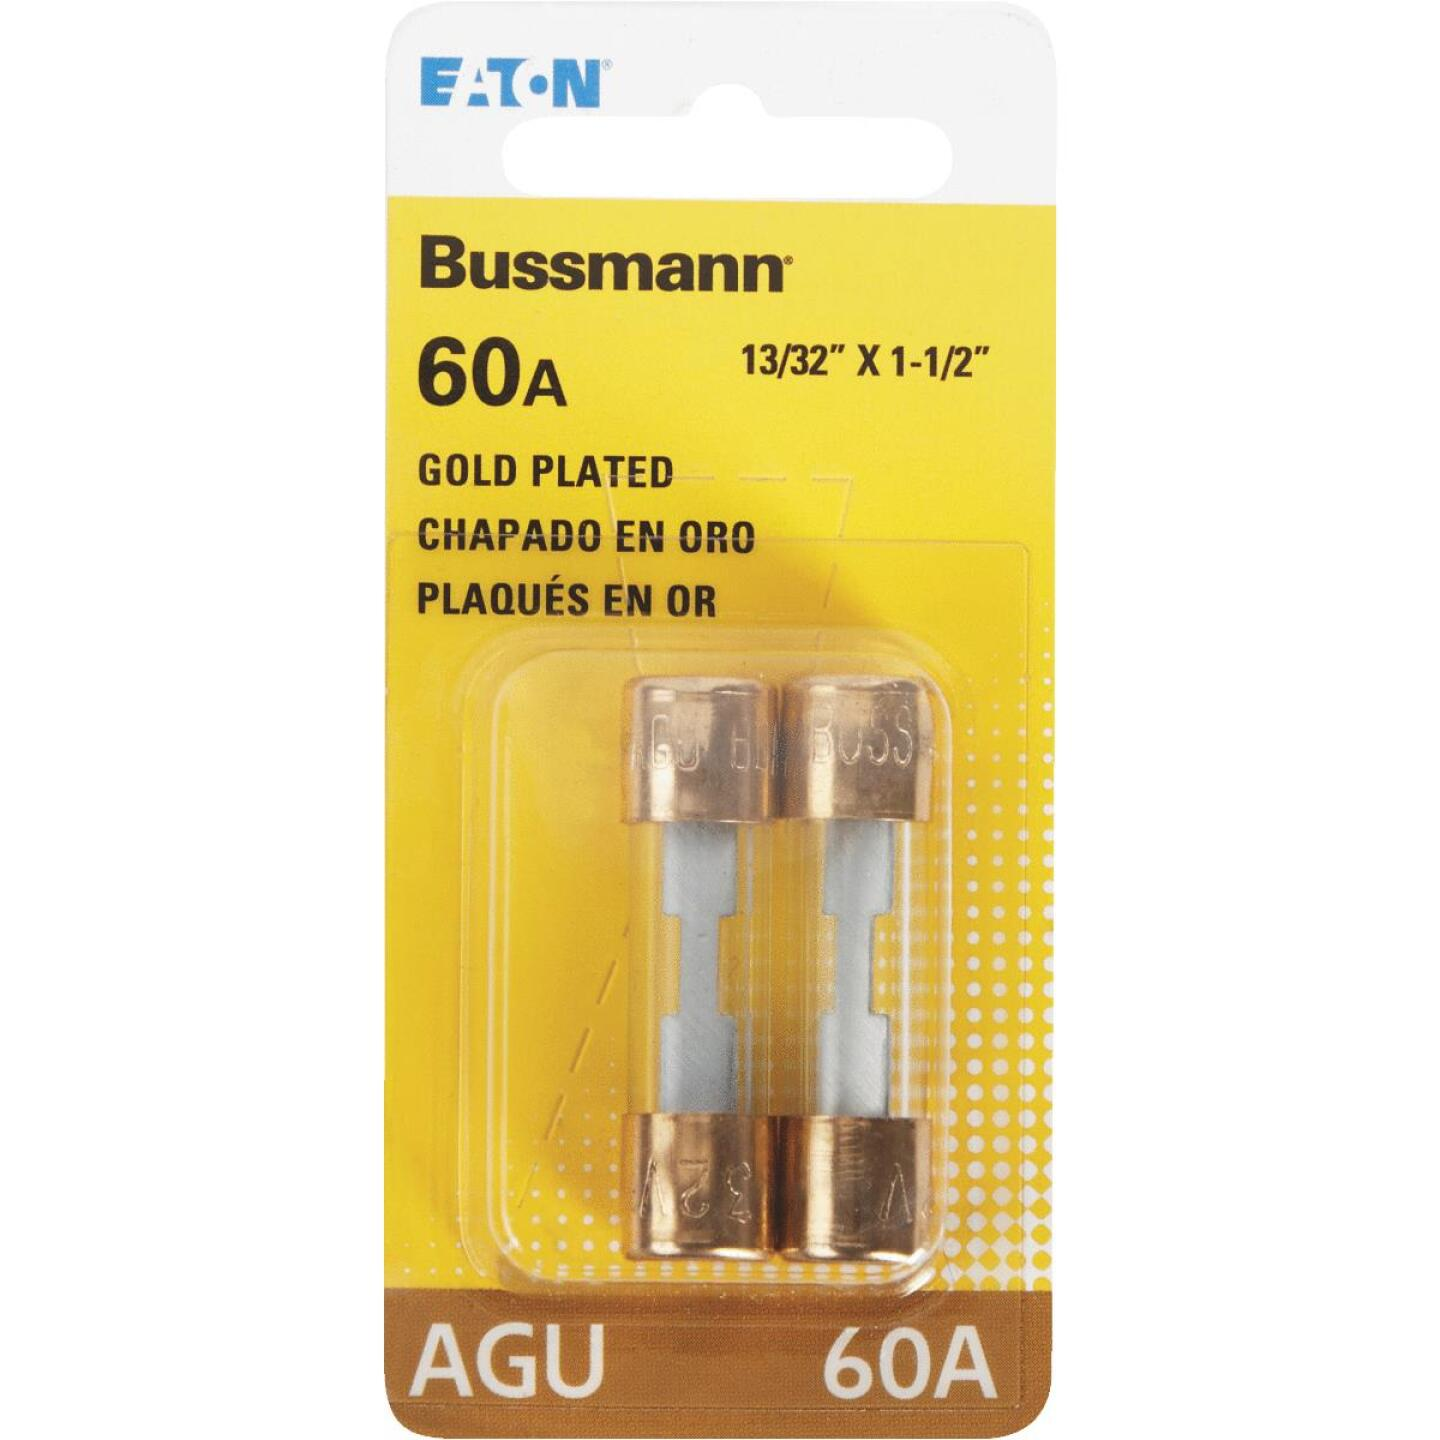 Bussmann 60-Amp AGU Glass Tube Automotive Fuse with Gold-Plated End Caps (2-Pack) Image 3